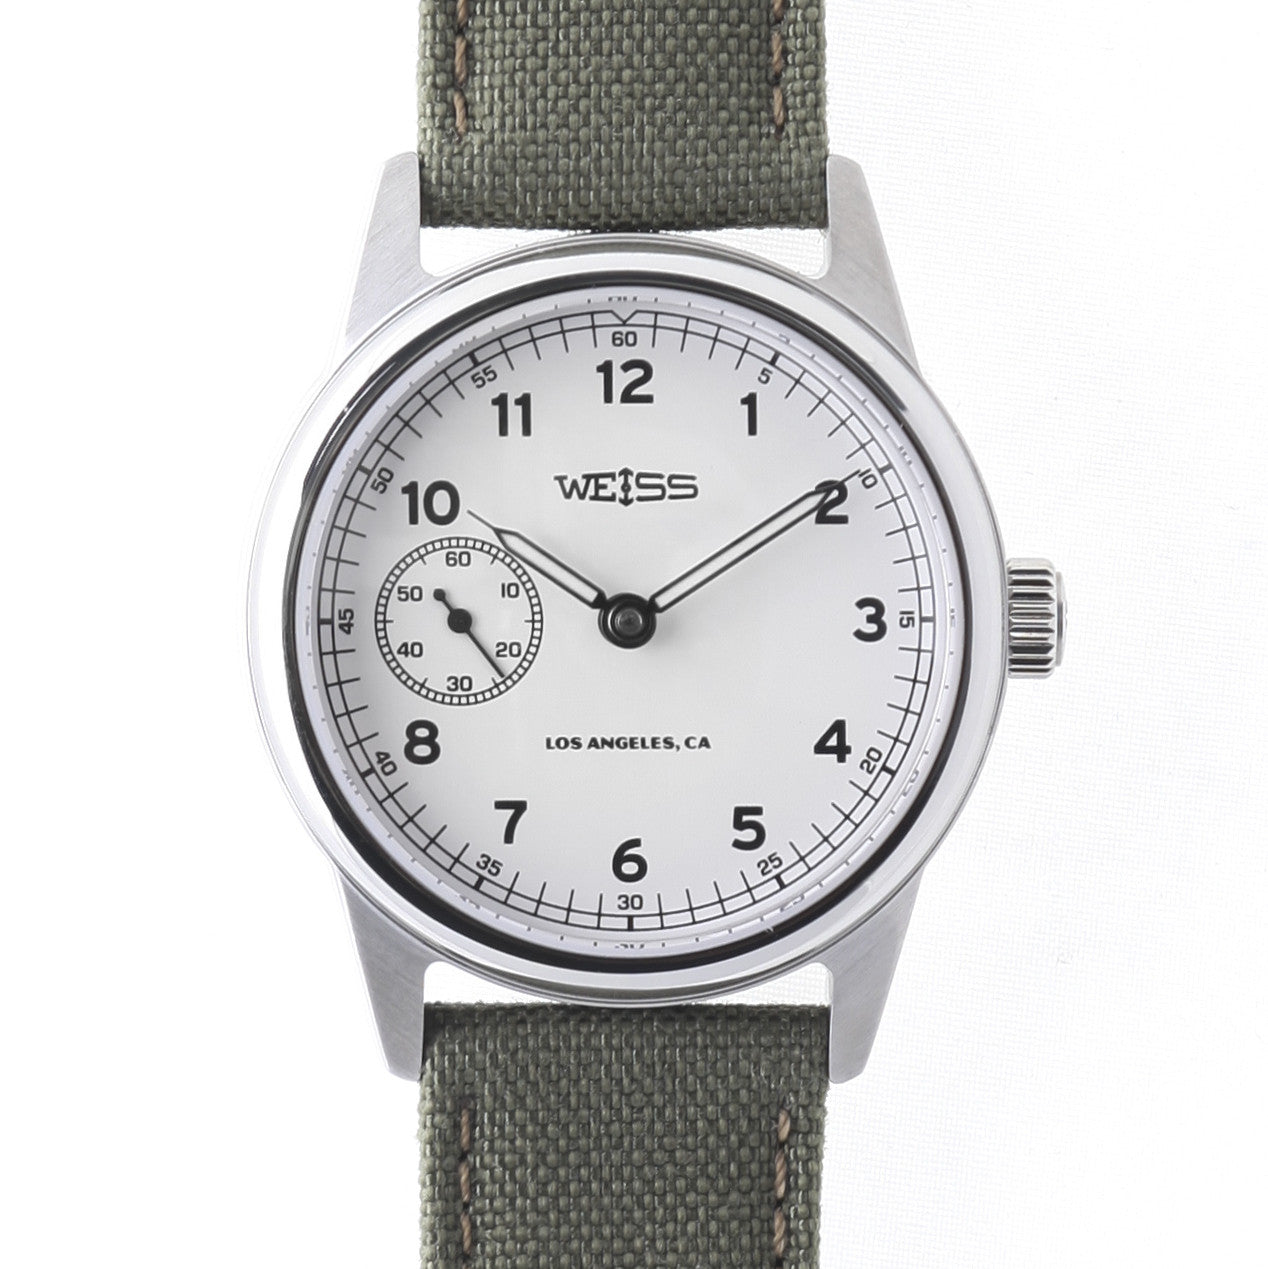 Automatic issue field watch white dial built in the usa weiss watch company for Watches 38mm